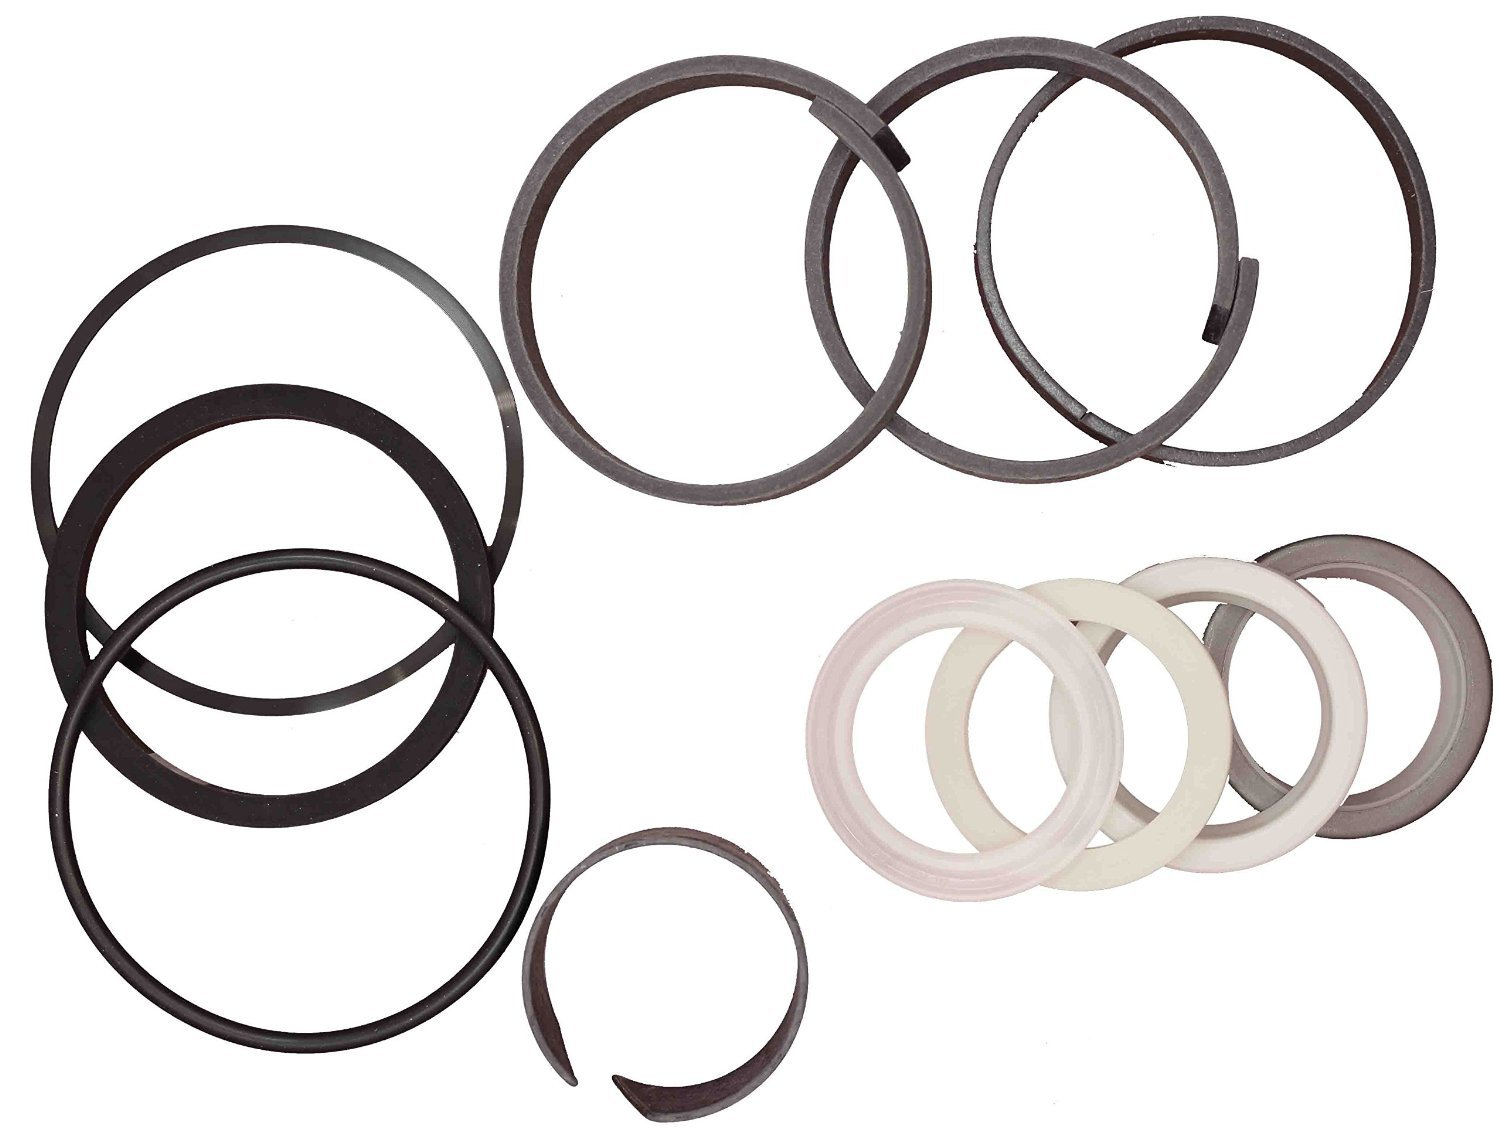 TORNADO HEAVY EQUIPMENT PARTS 1543252C1 CASE 1543252C1 HYDRAULIC CYLINDER SEAL KIT